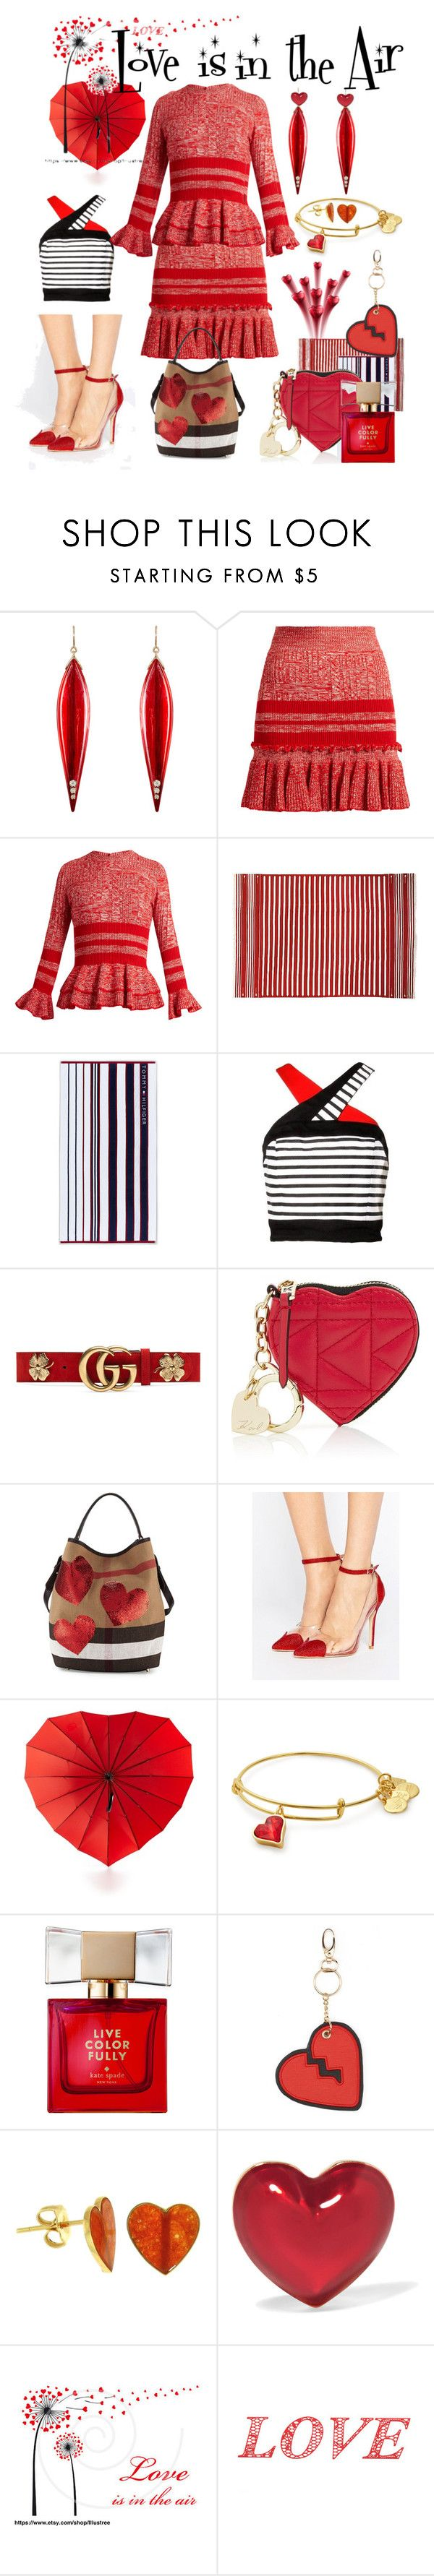 """""""Love is in the Air"""" by rosalindmarshall ❤ liked on Polyvore featuring Mark Davis, Alexander McQueen, Tommy Hilfiger, Gucci, Karl Lagerfeld, Burberry, Public Desire, Celebrate Shop, Kate Spade and Under One Sky"""